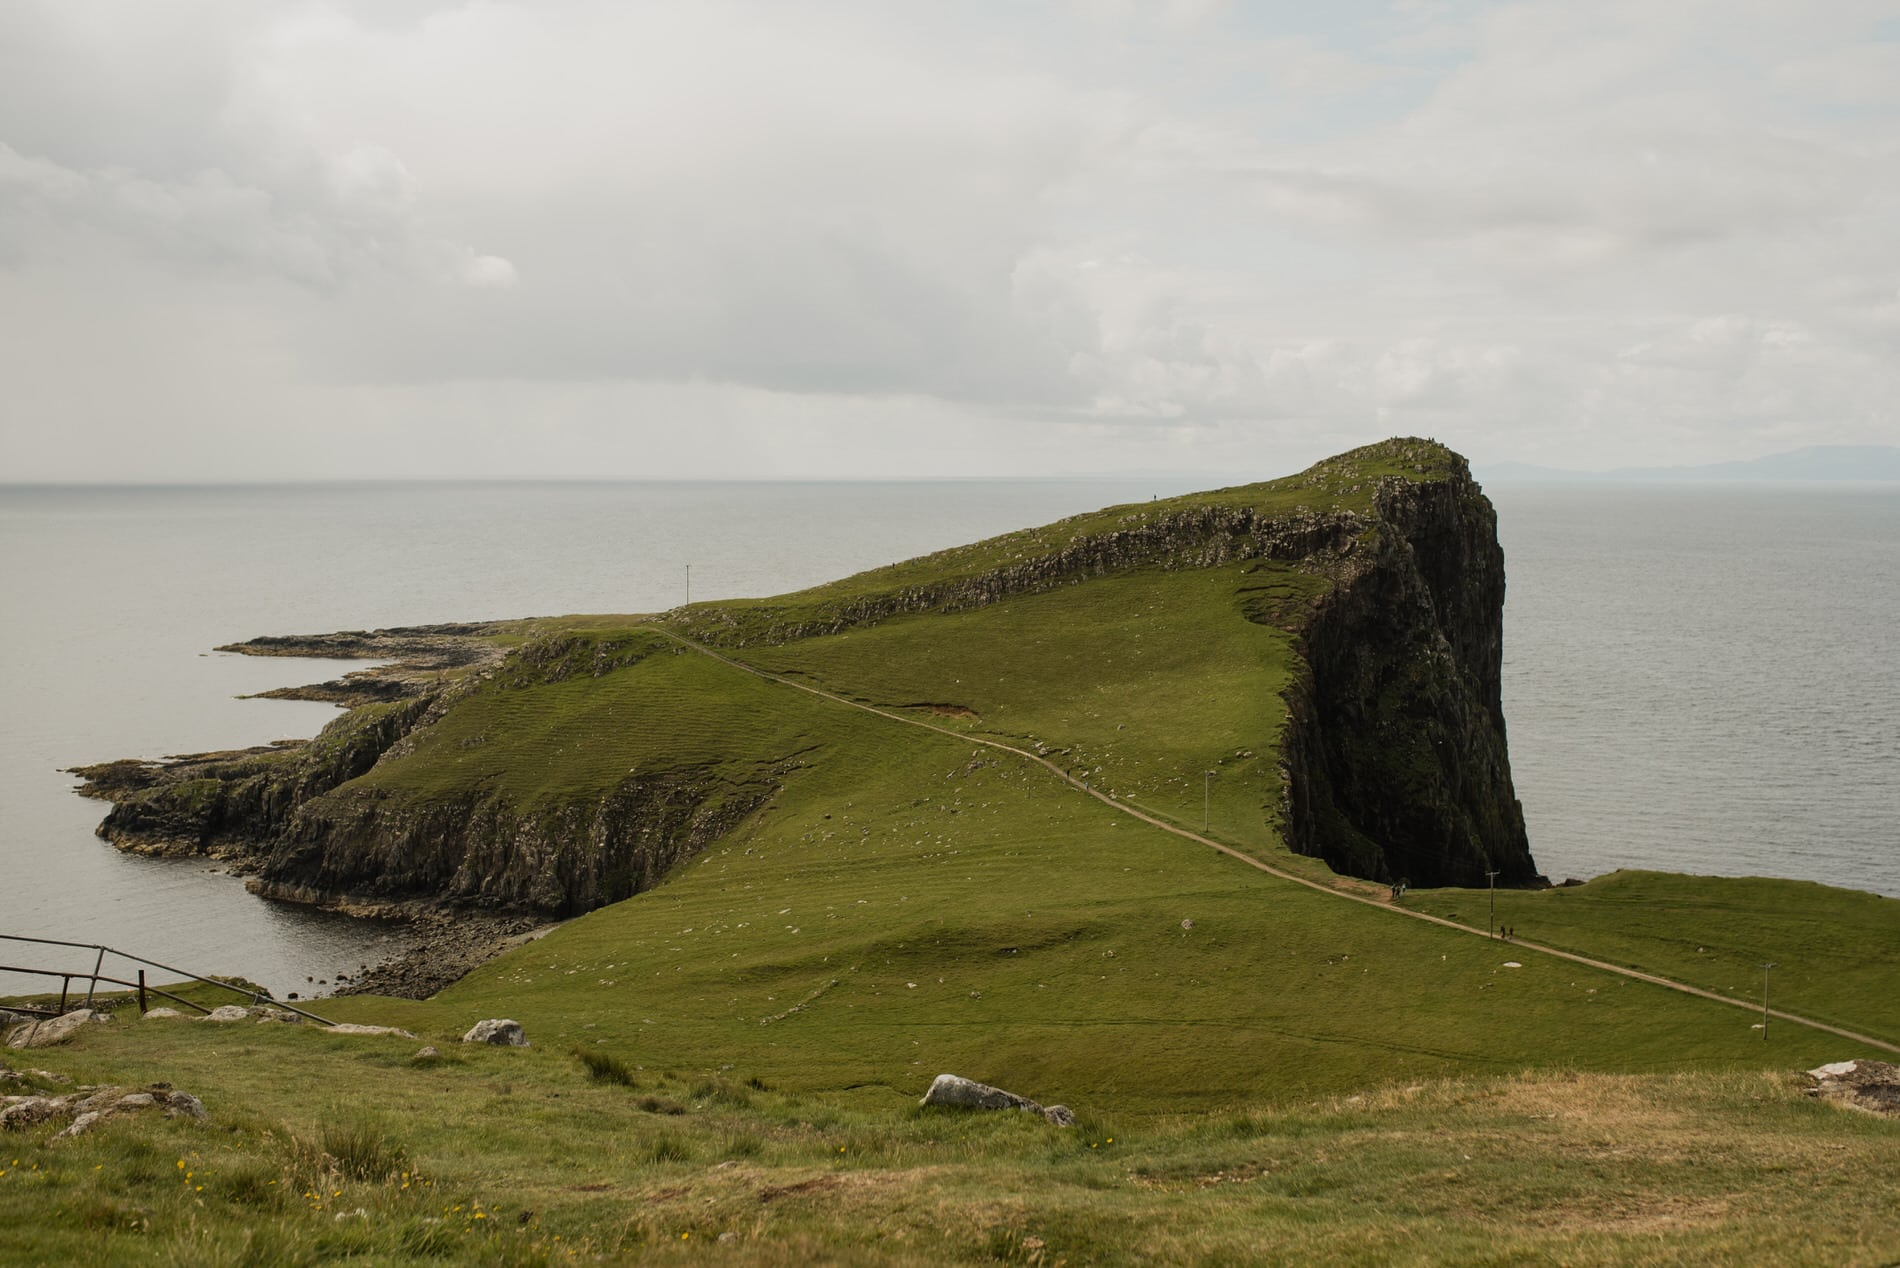 Neist Point Lighthouse in Isle of Skye